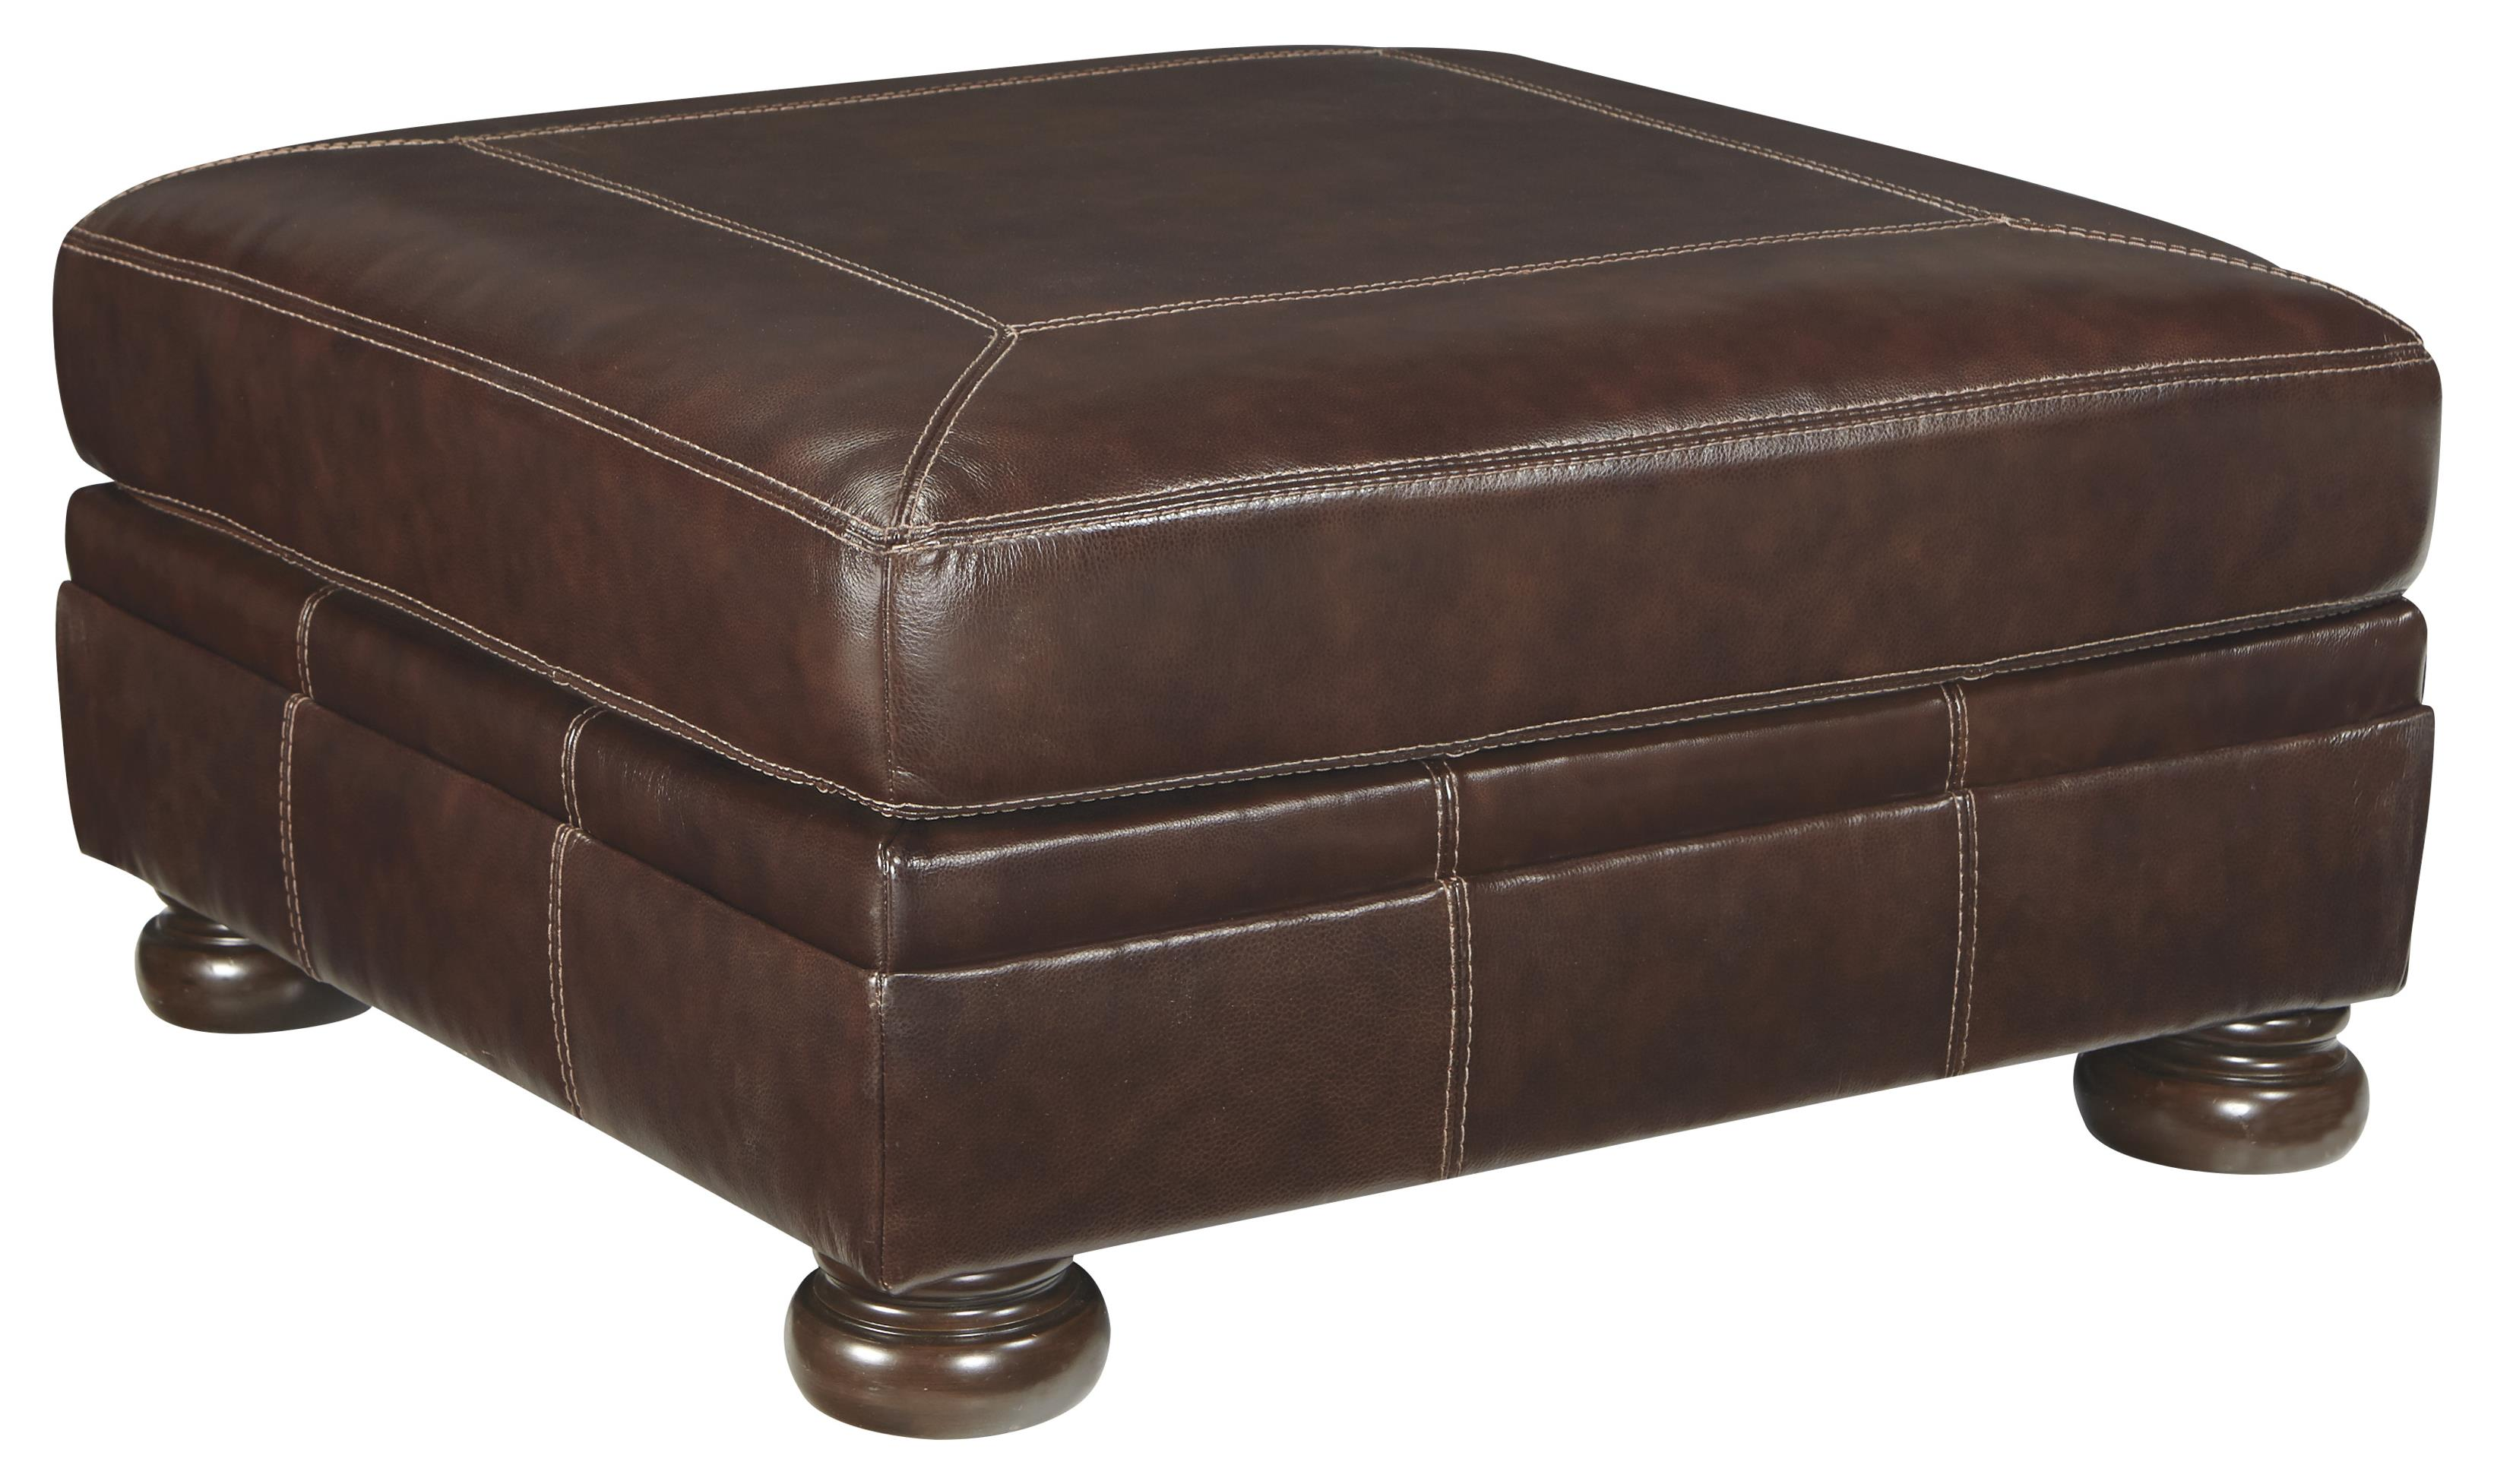 Signature Design by Ashley Banner Oversized Accent Ottoman - Item Number: 5040408